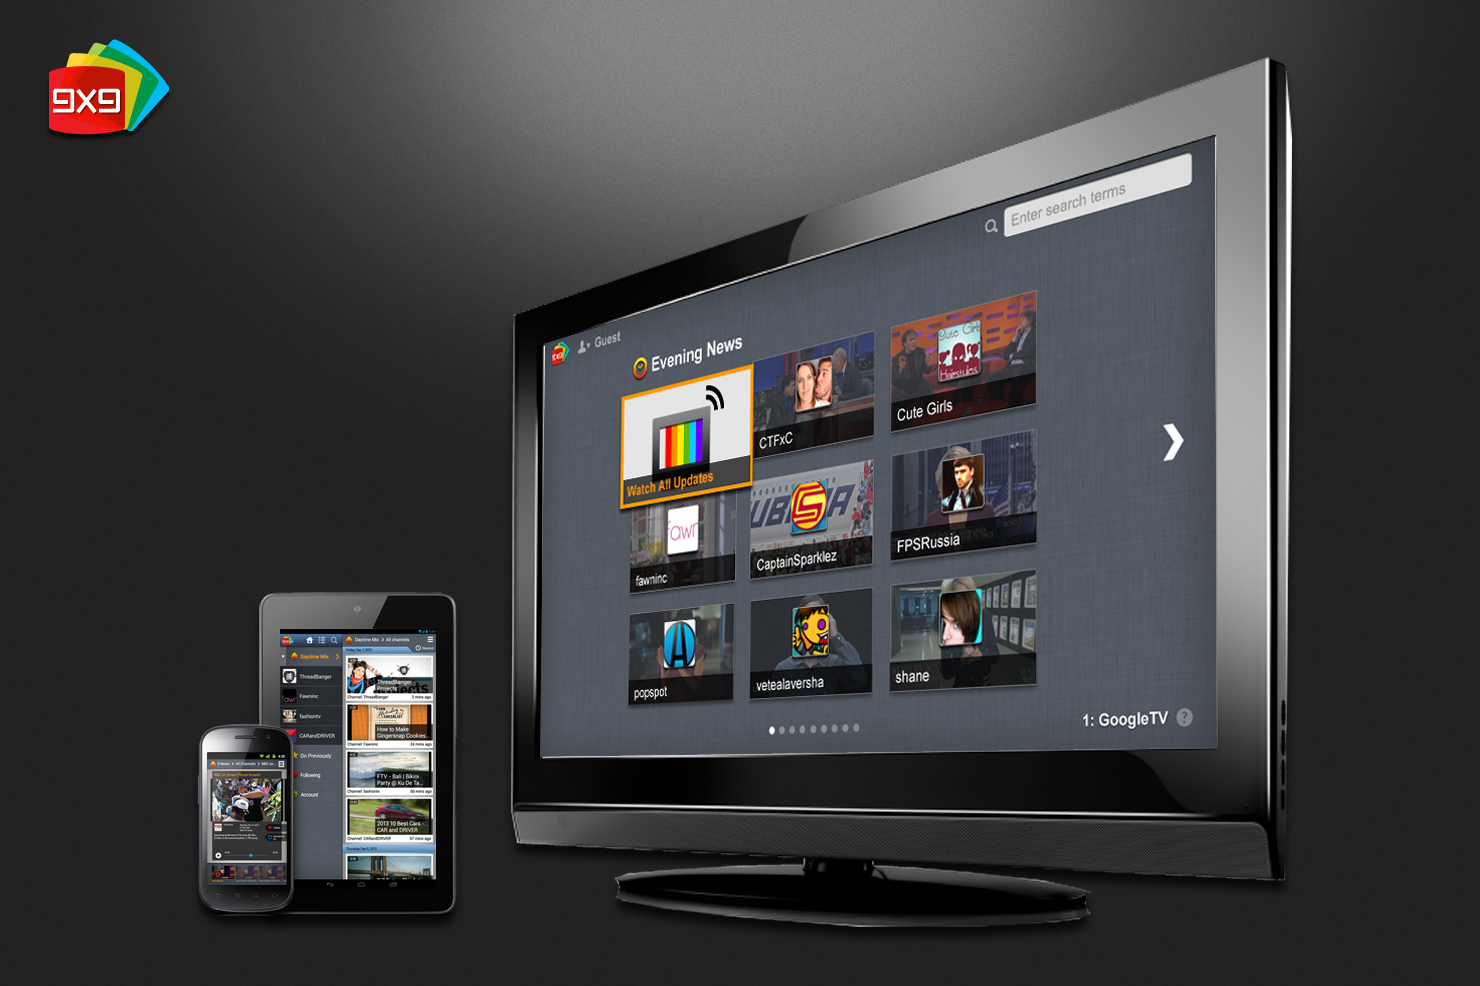 9x9.tv's discovery app runs on Android smartphones and tablets and Google TV.